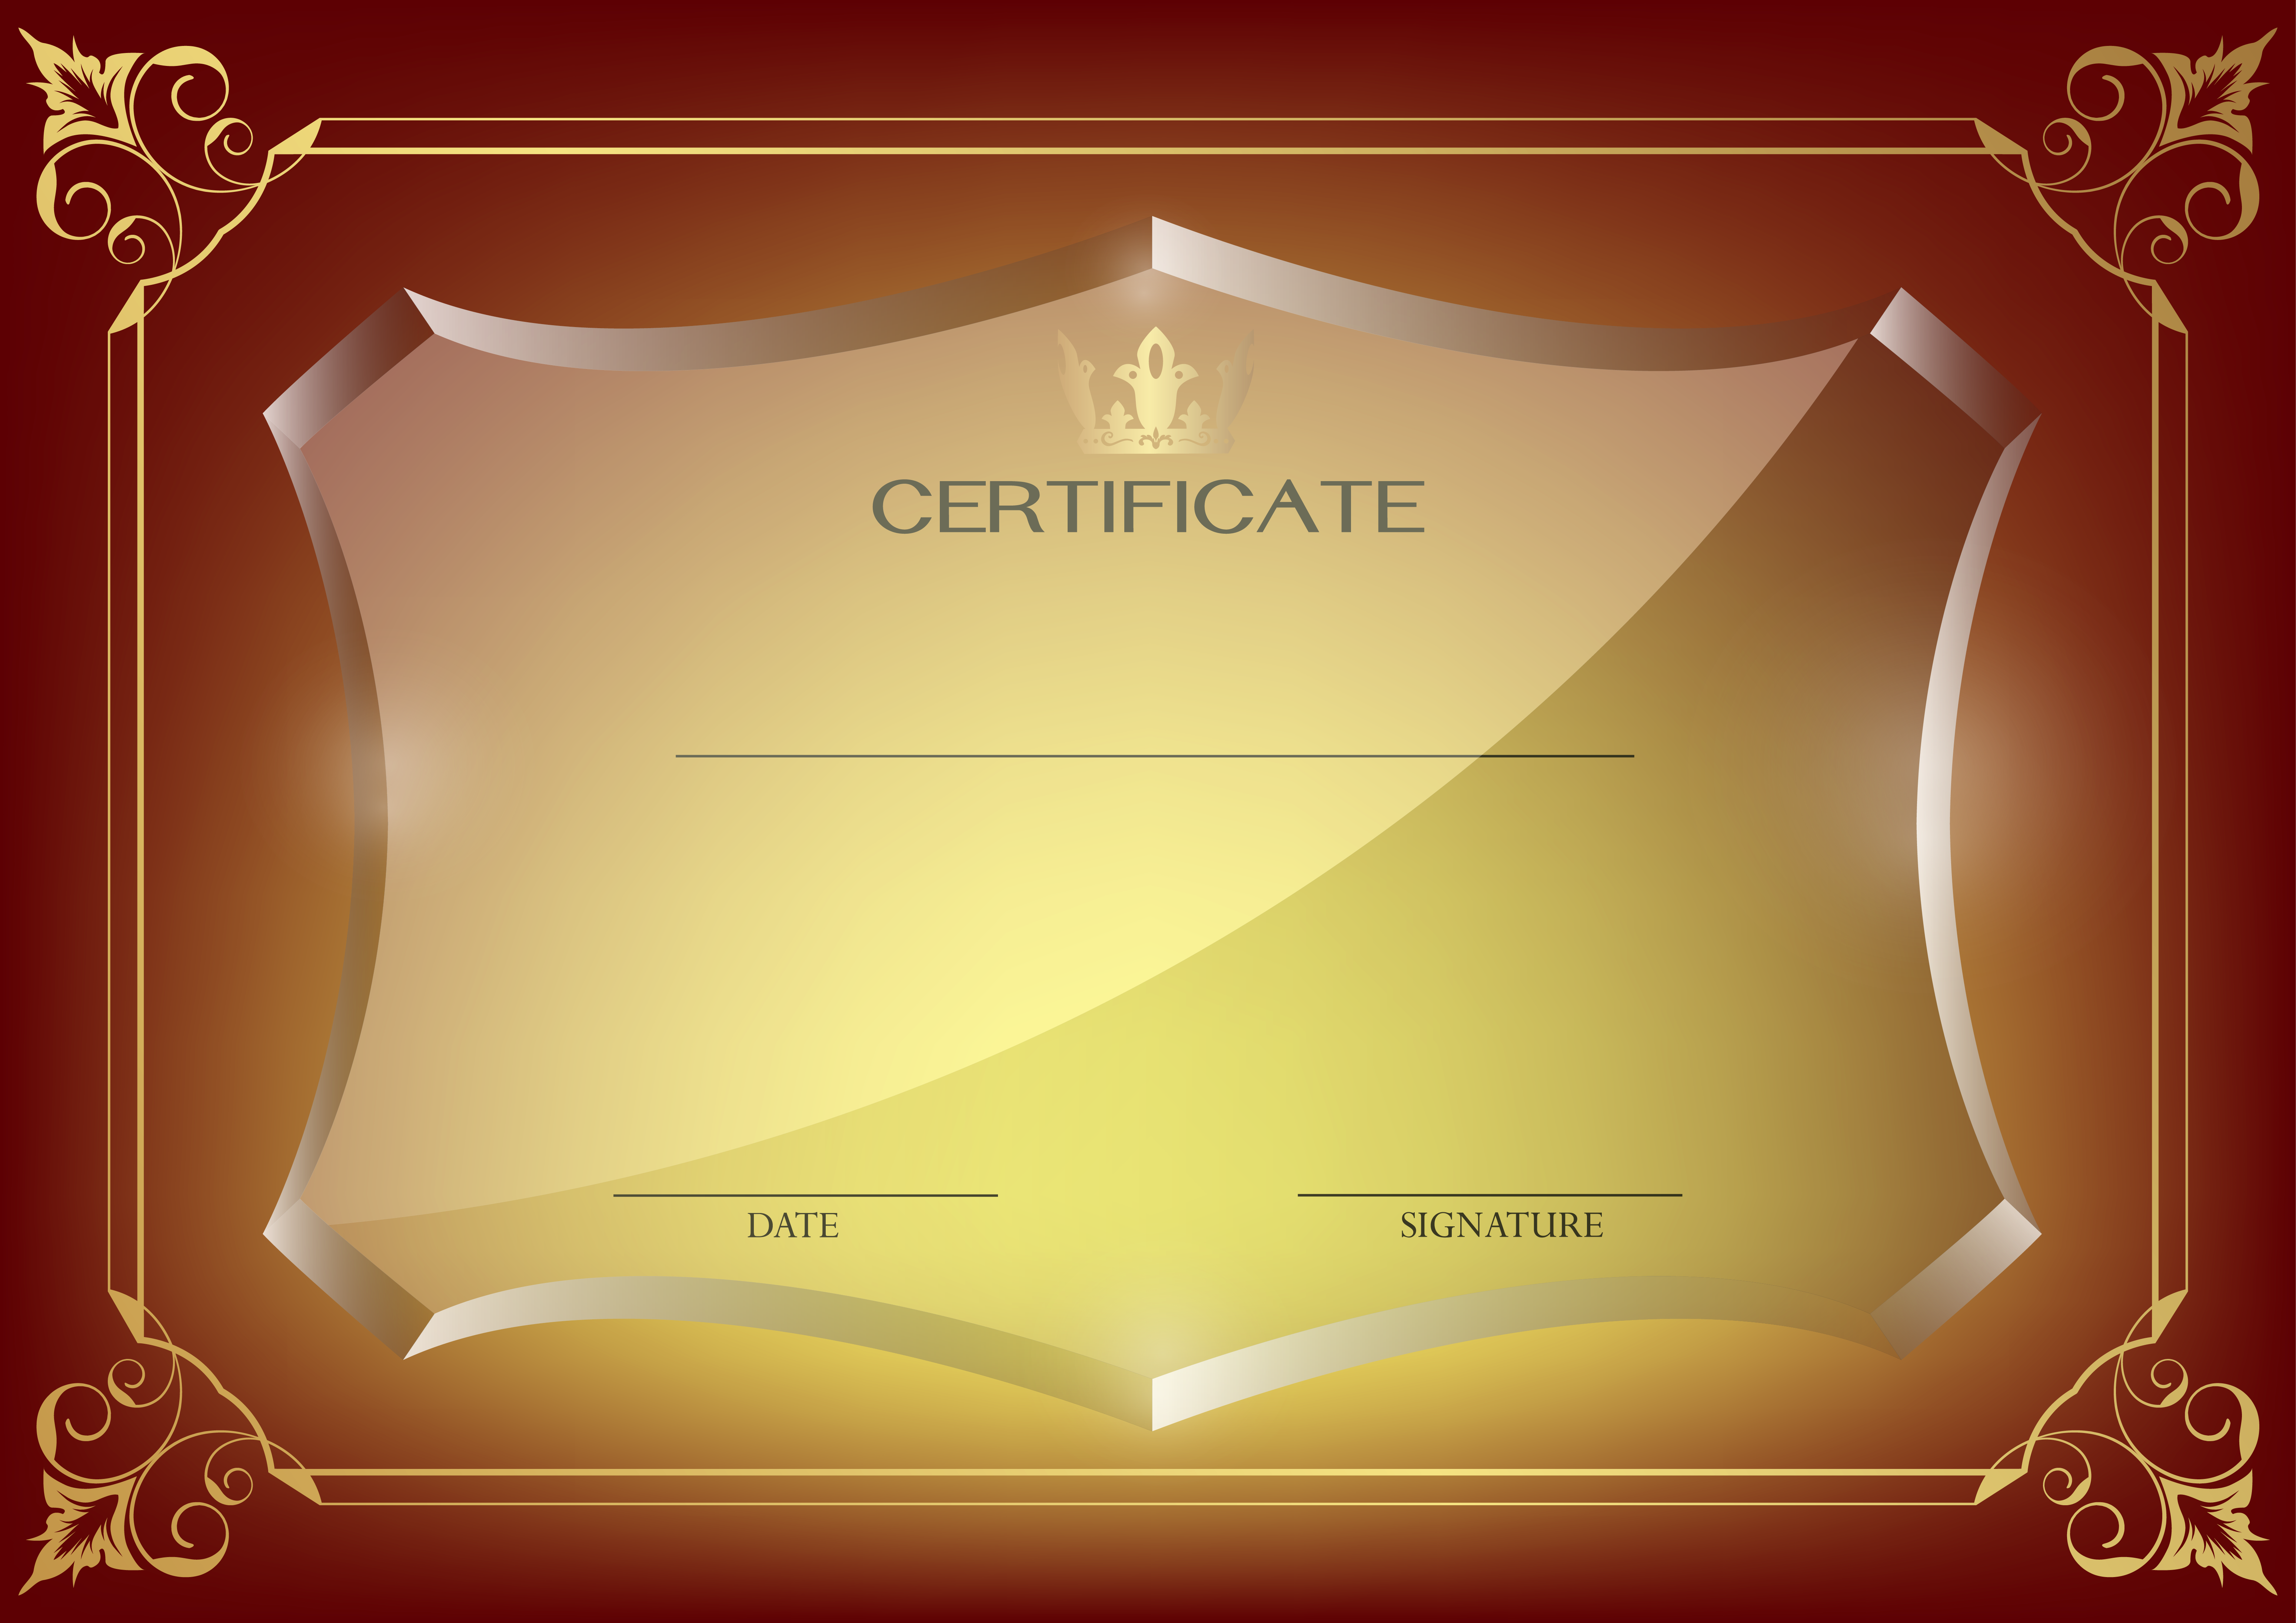 Red certificate template png image certificado pinterest red certificate template png image yadclub Image collections